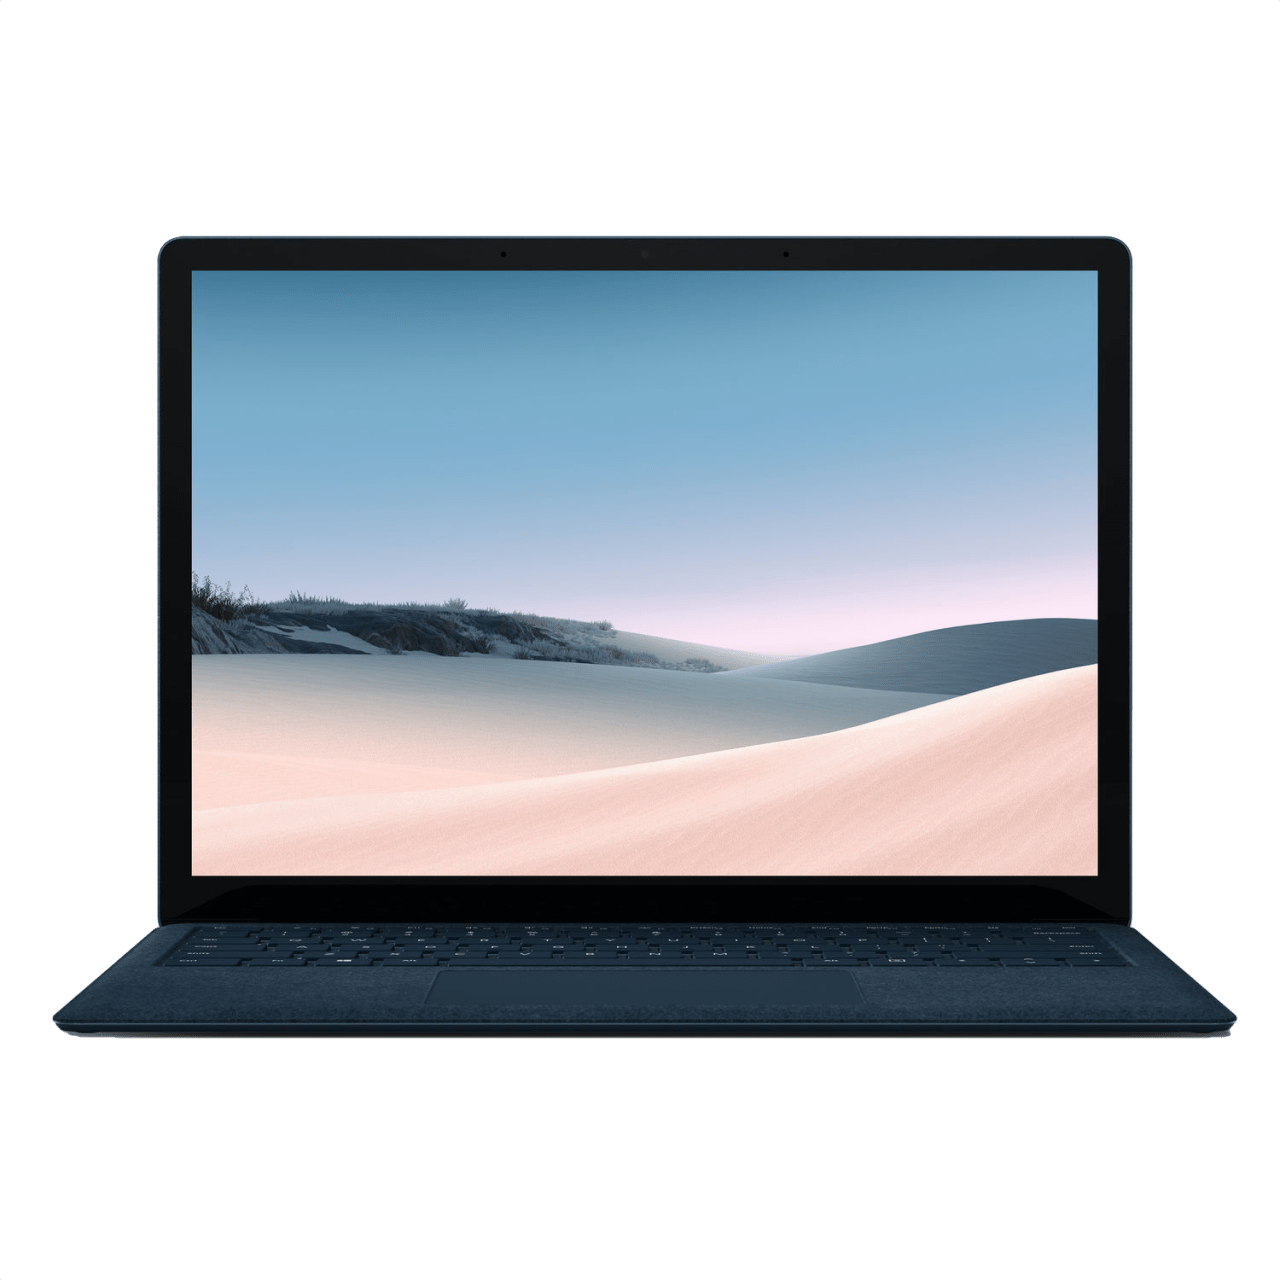 Cobalt Blue (Fabric) Microsoft Surface Laptop 3.1